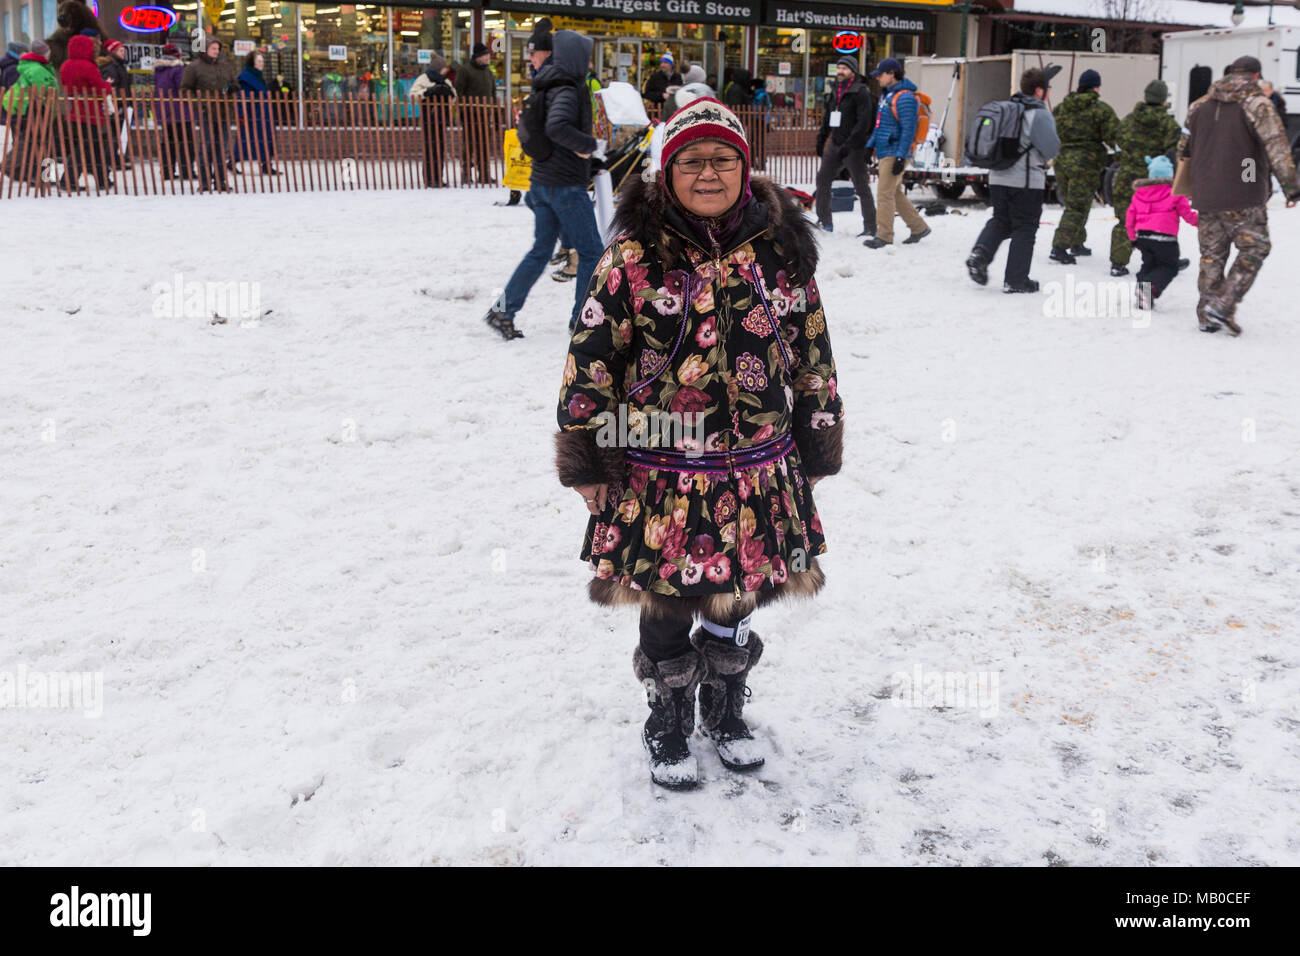 Native Alaskan at start of 2018 Iditarod in Anchorage Alaska - Stock Image